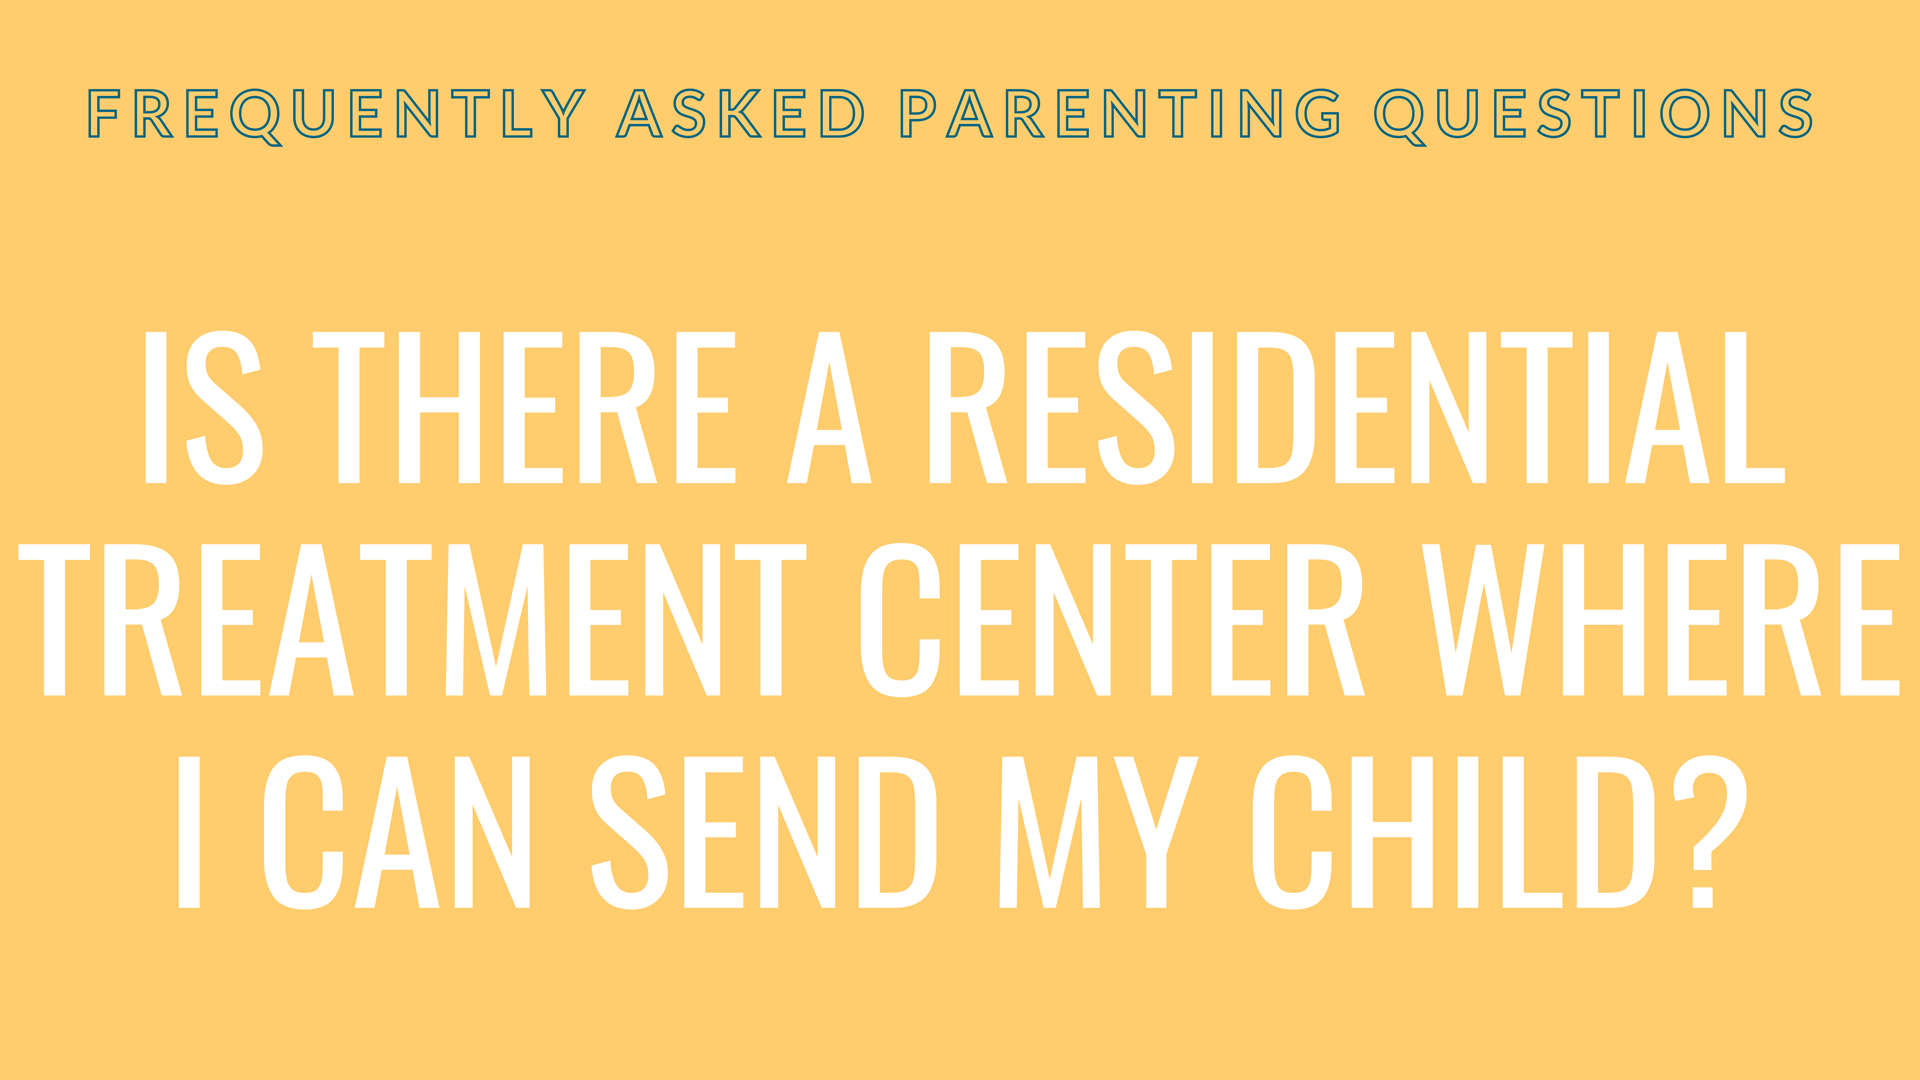 Is there a residential treatment center where I can send my child?